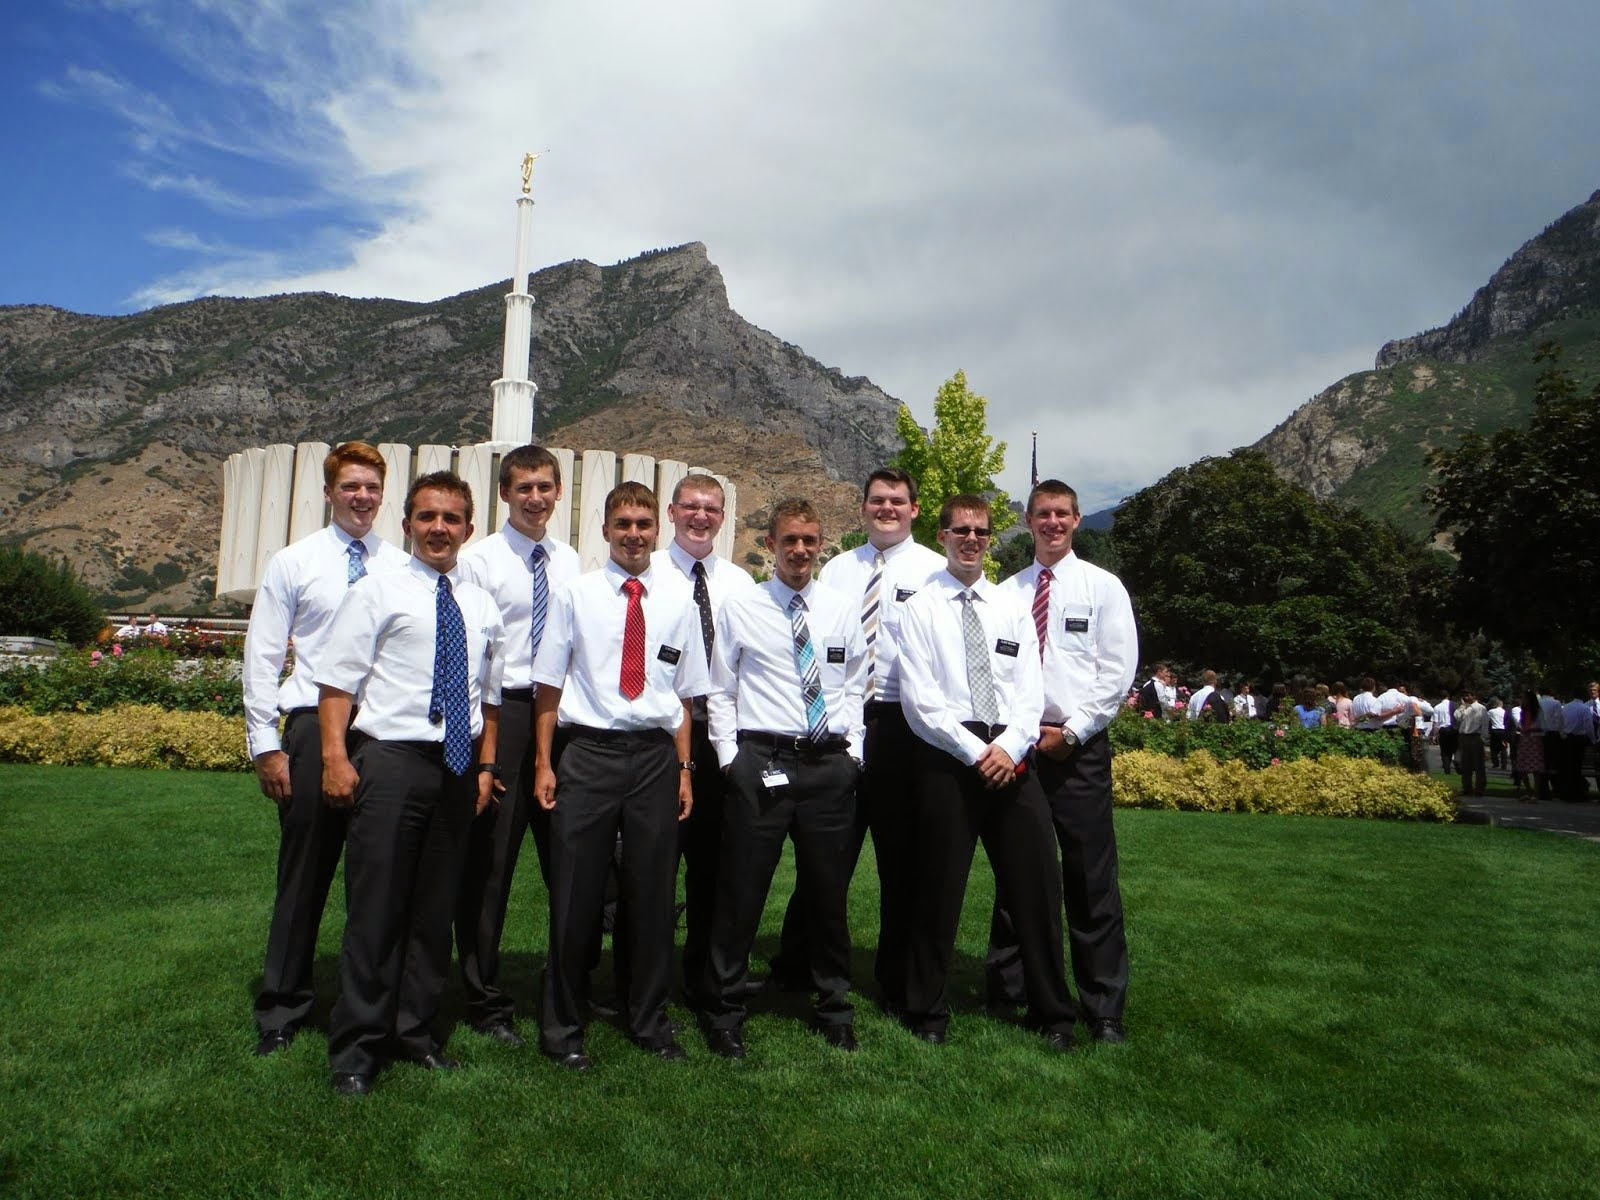 MISSIONARY TRAINING CENTER (MTC) DISTRICT AT THE PROVO TEMPLE